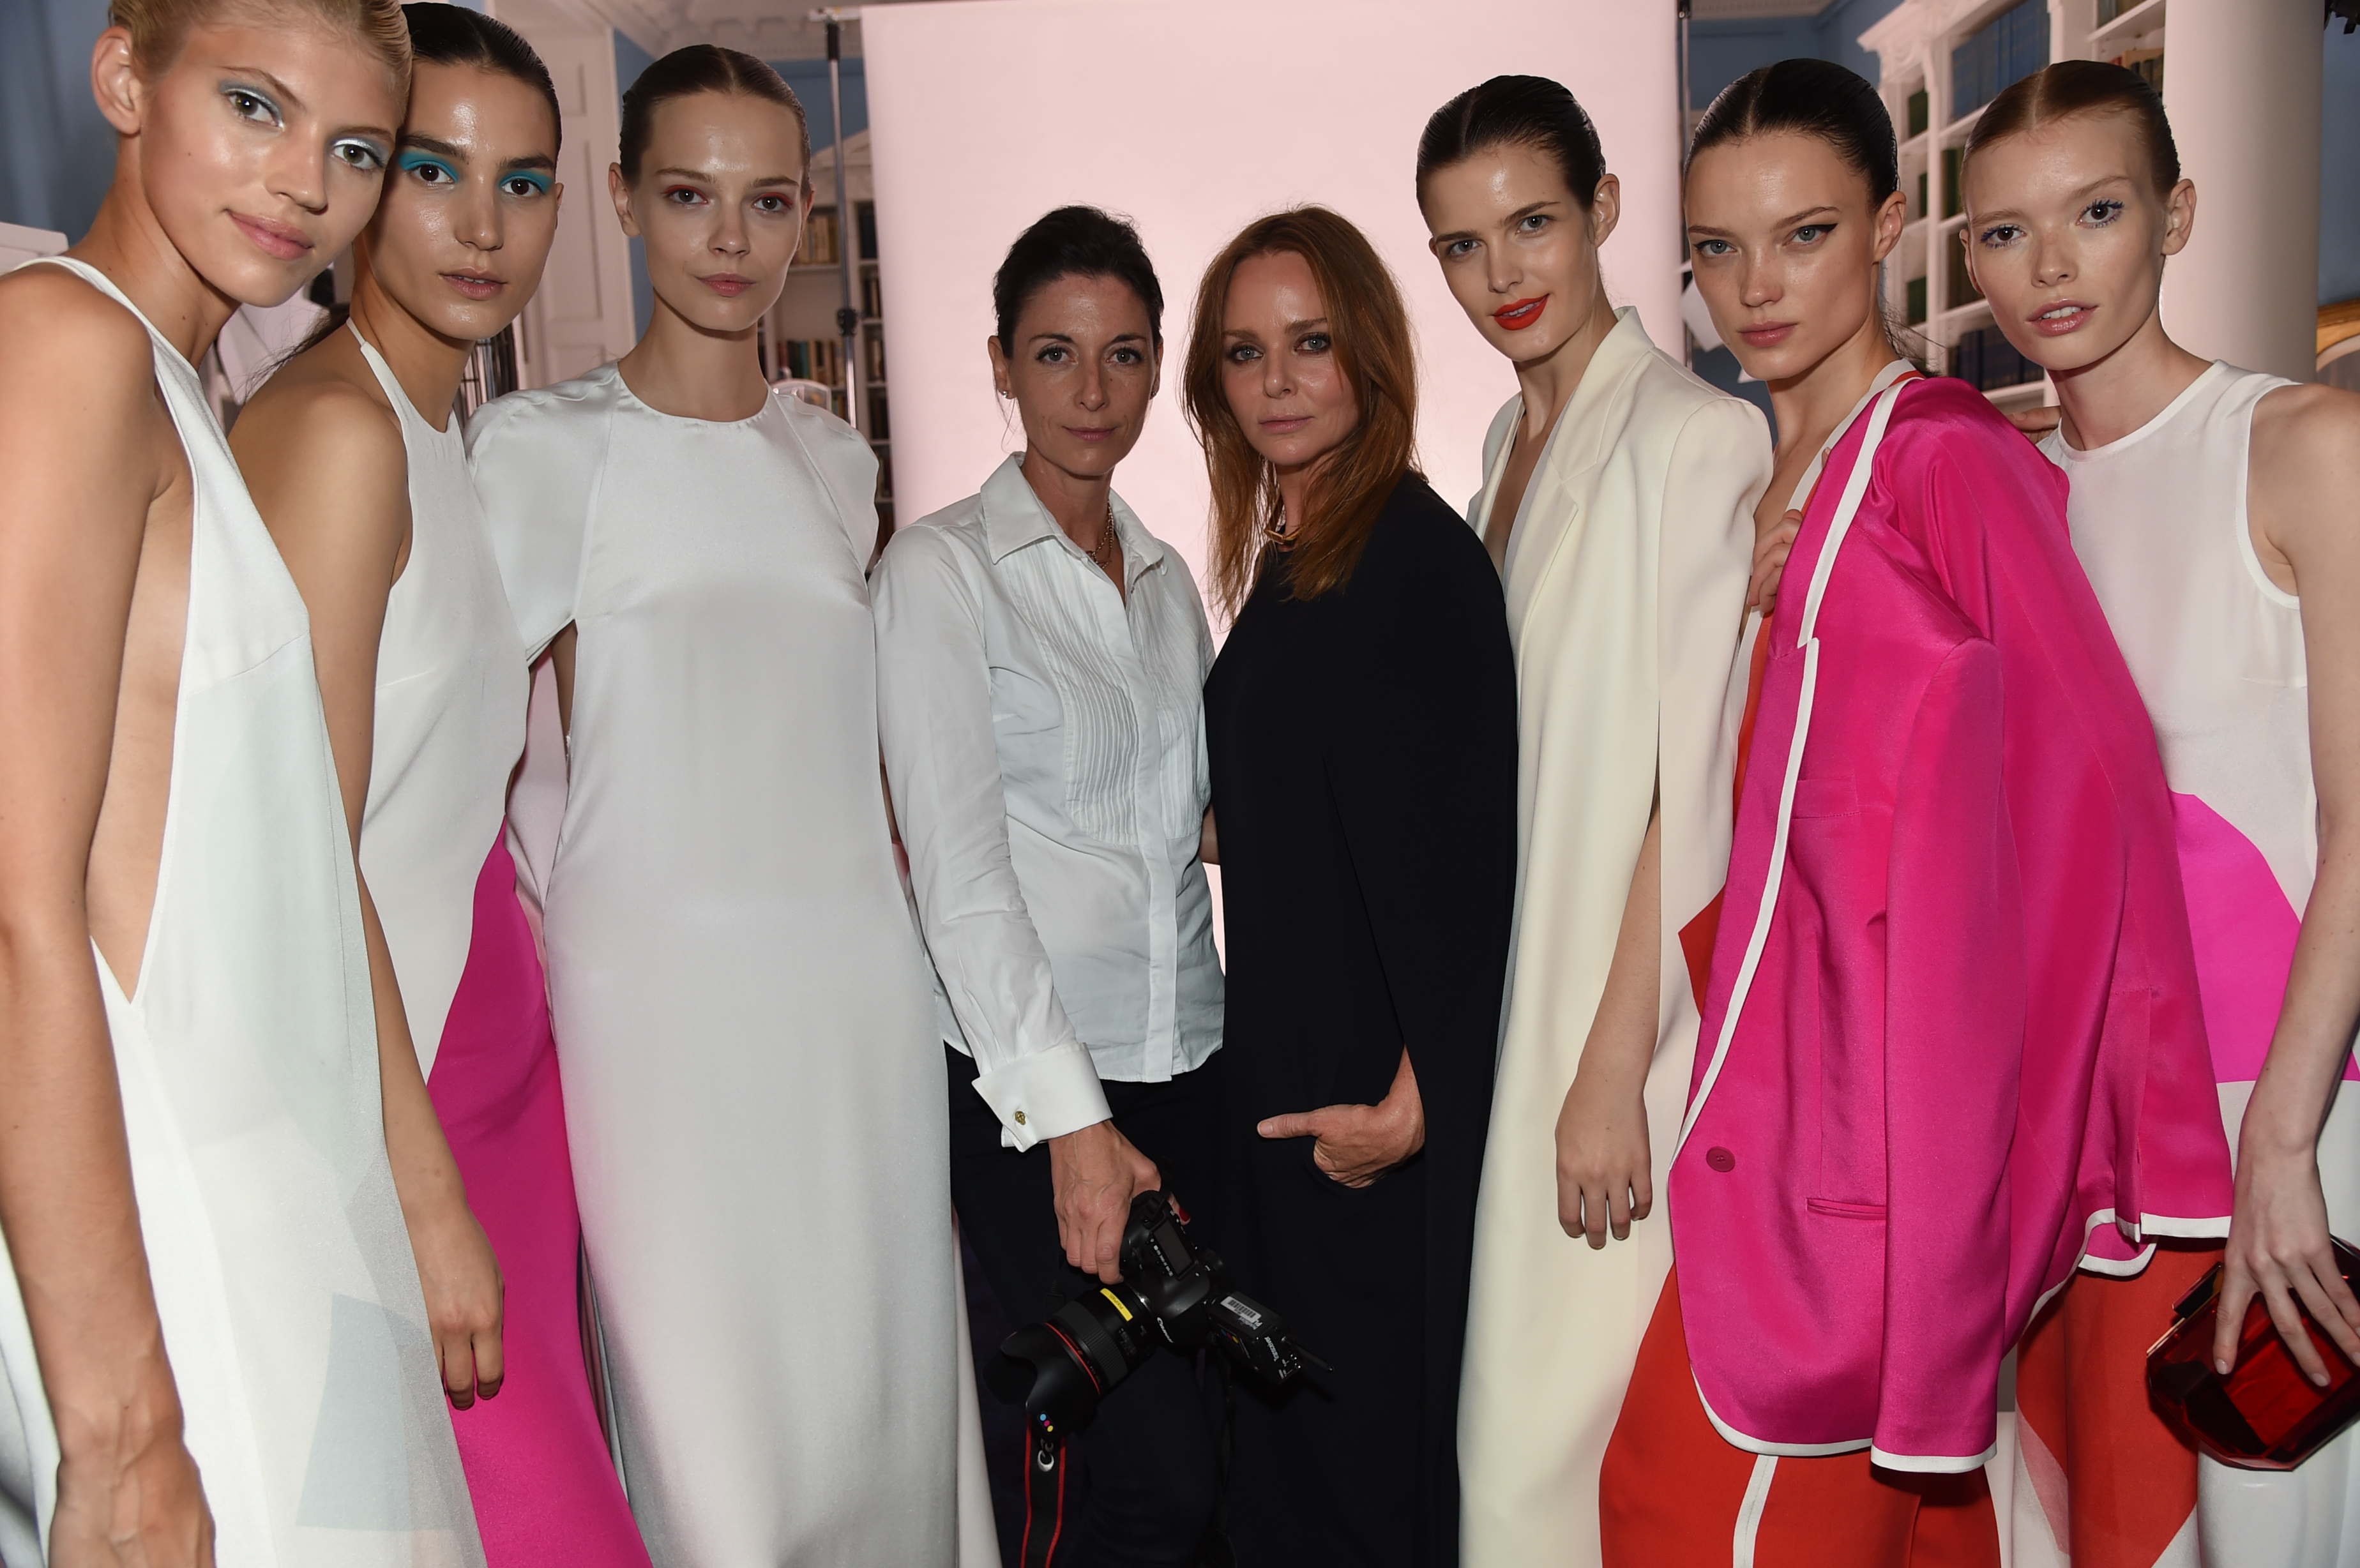 2014-09-14_stella_mccartney_1812_0.jpg